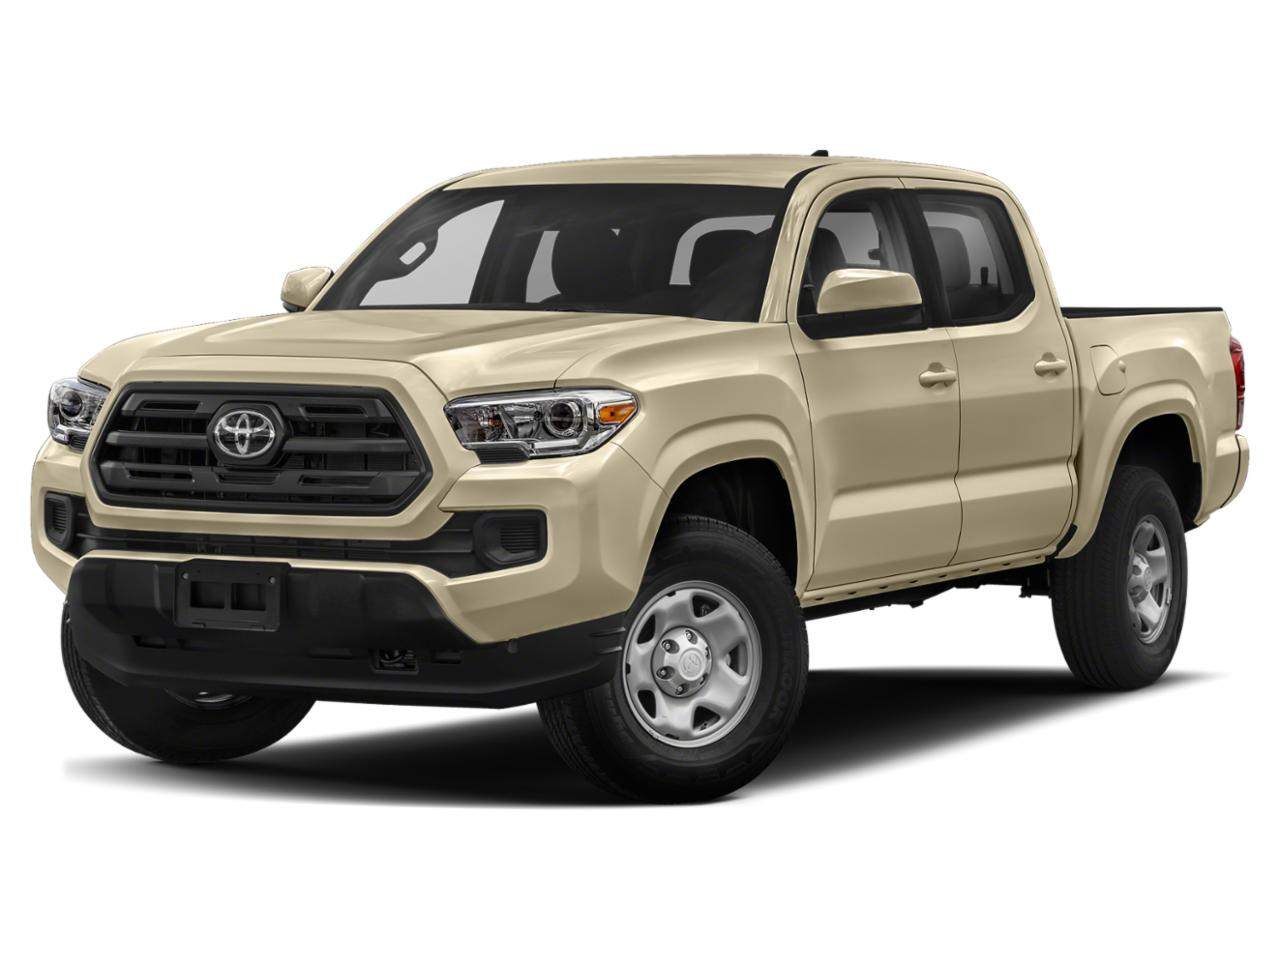 2019 Toyota Tacoma 2WD Vehicle Photo in Riverside, CA 92504